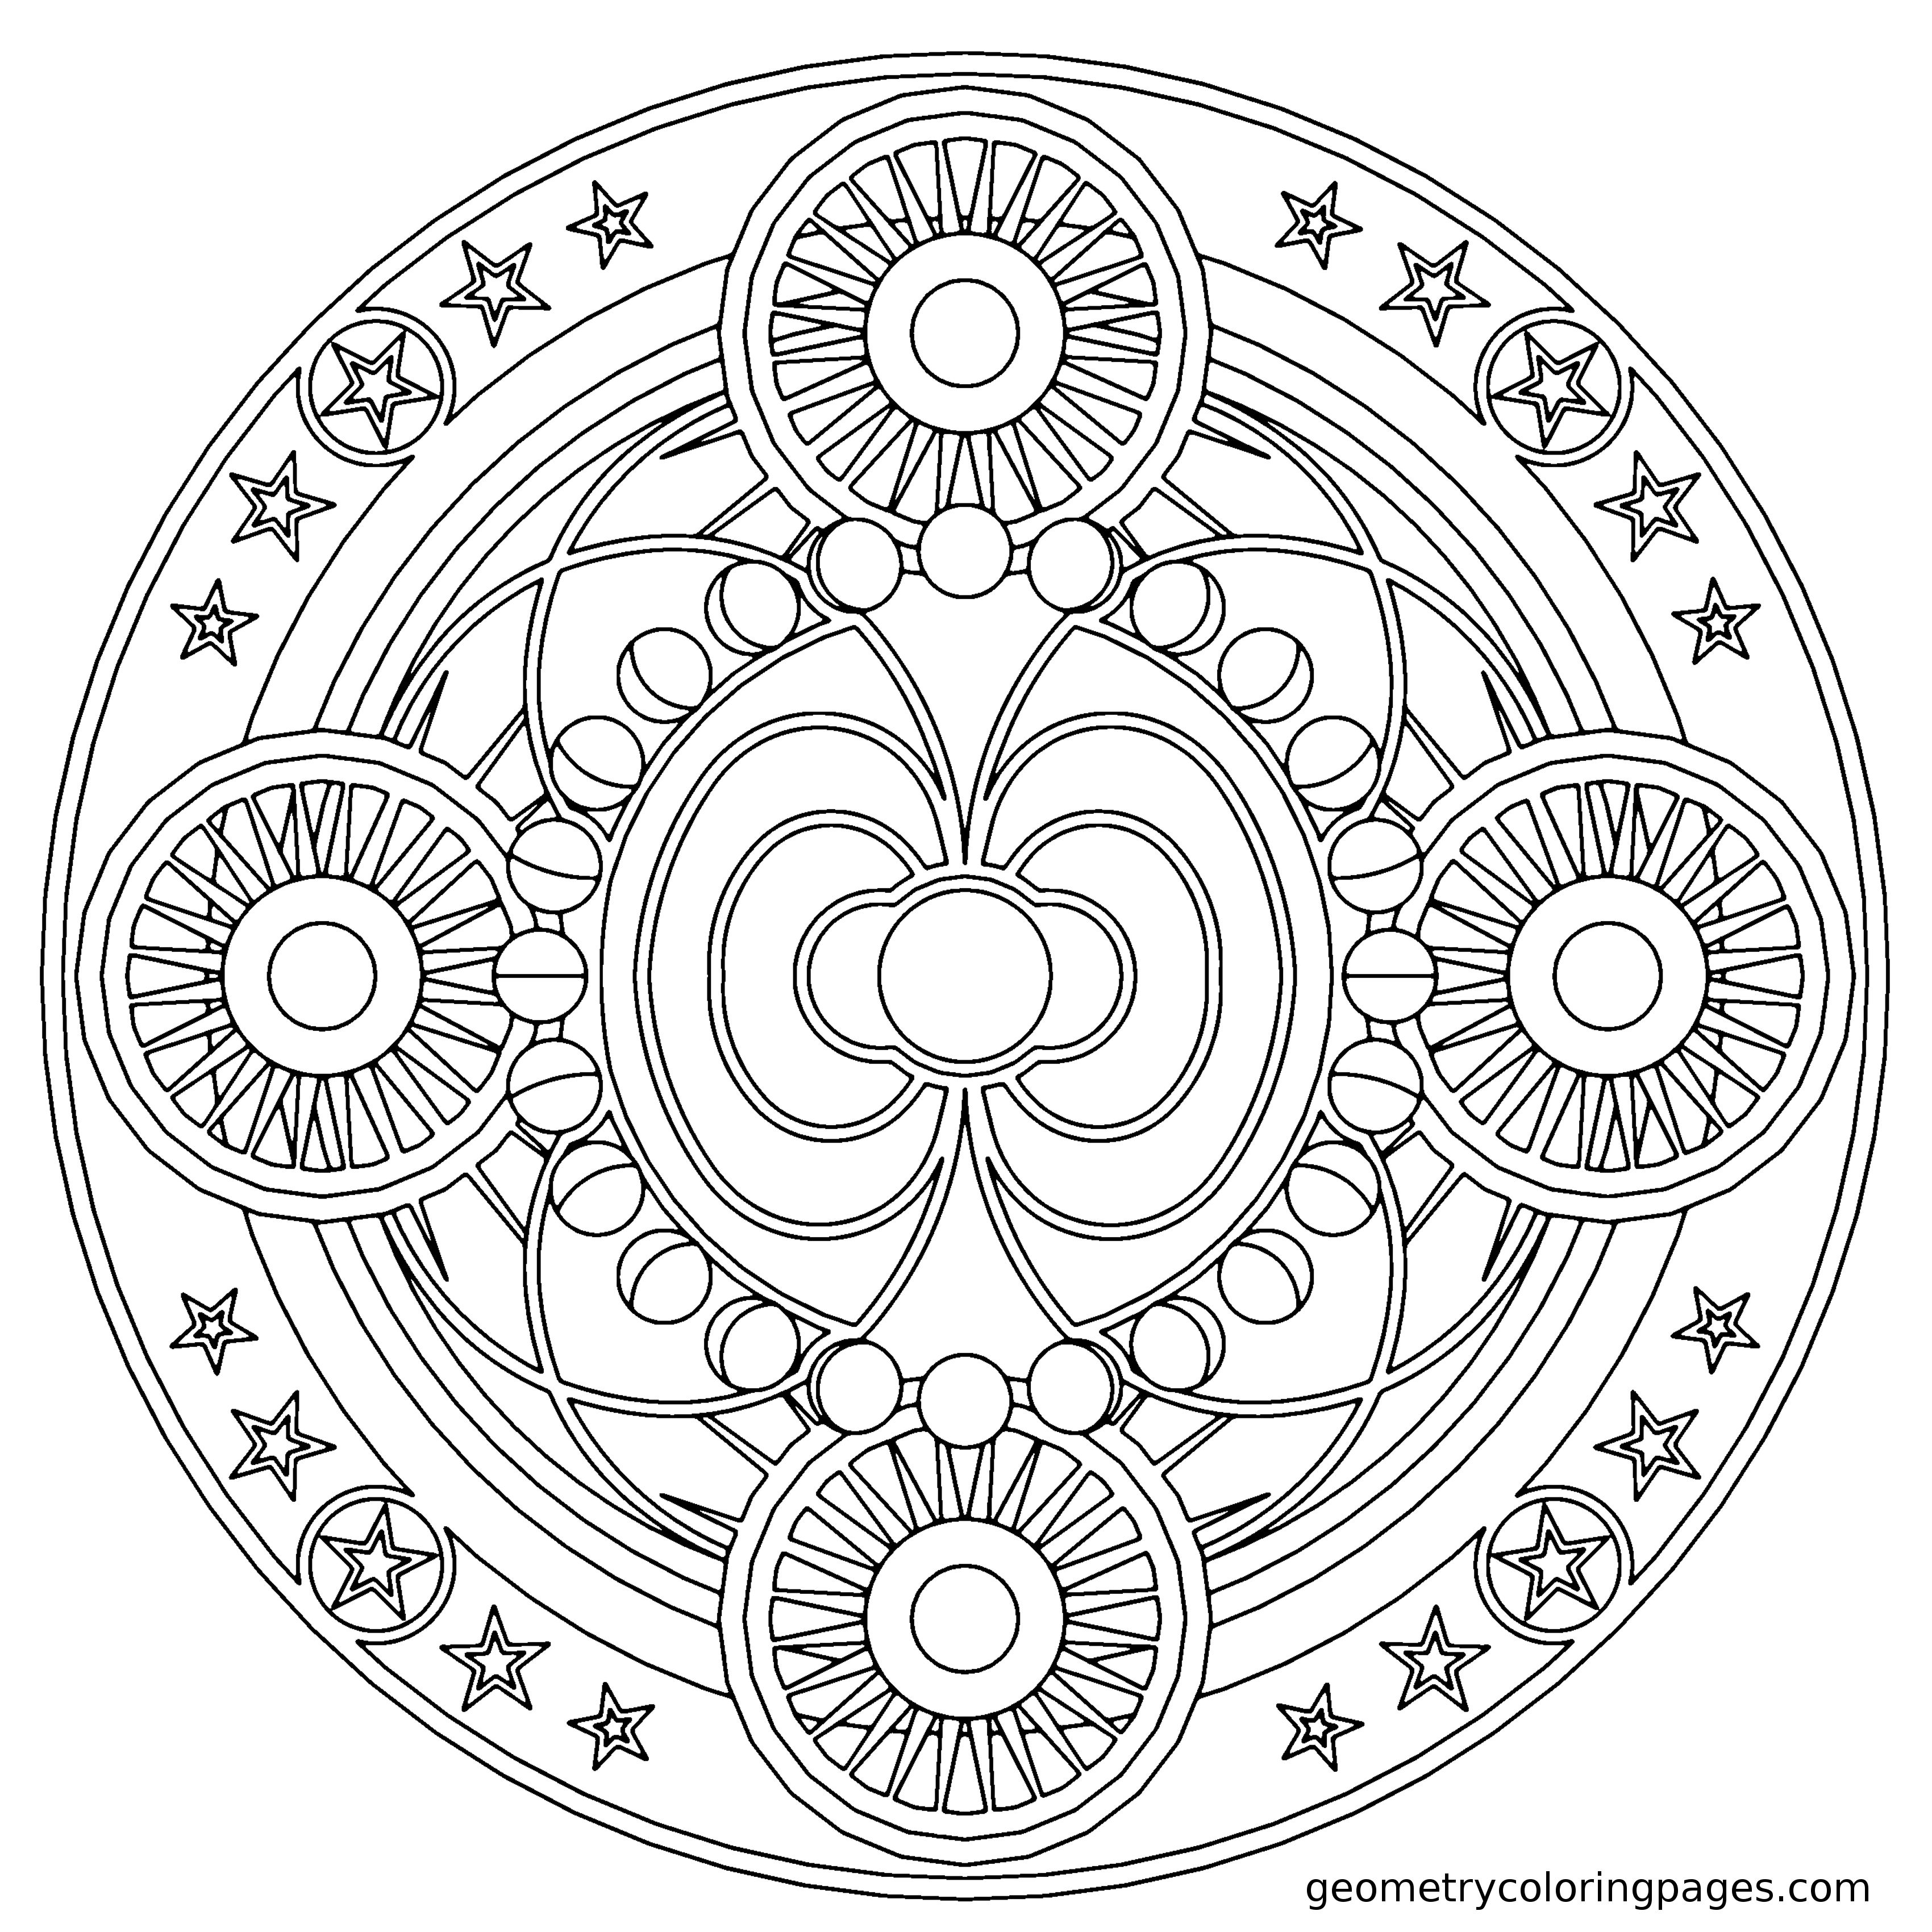 geometric coloring pages Fascia